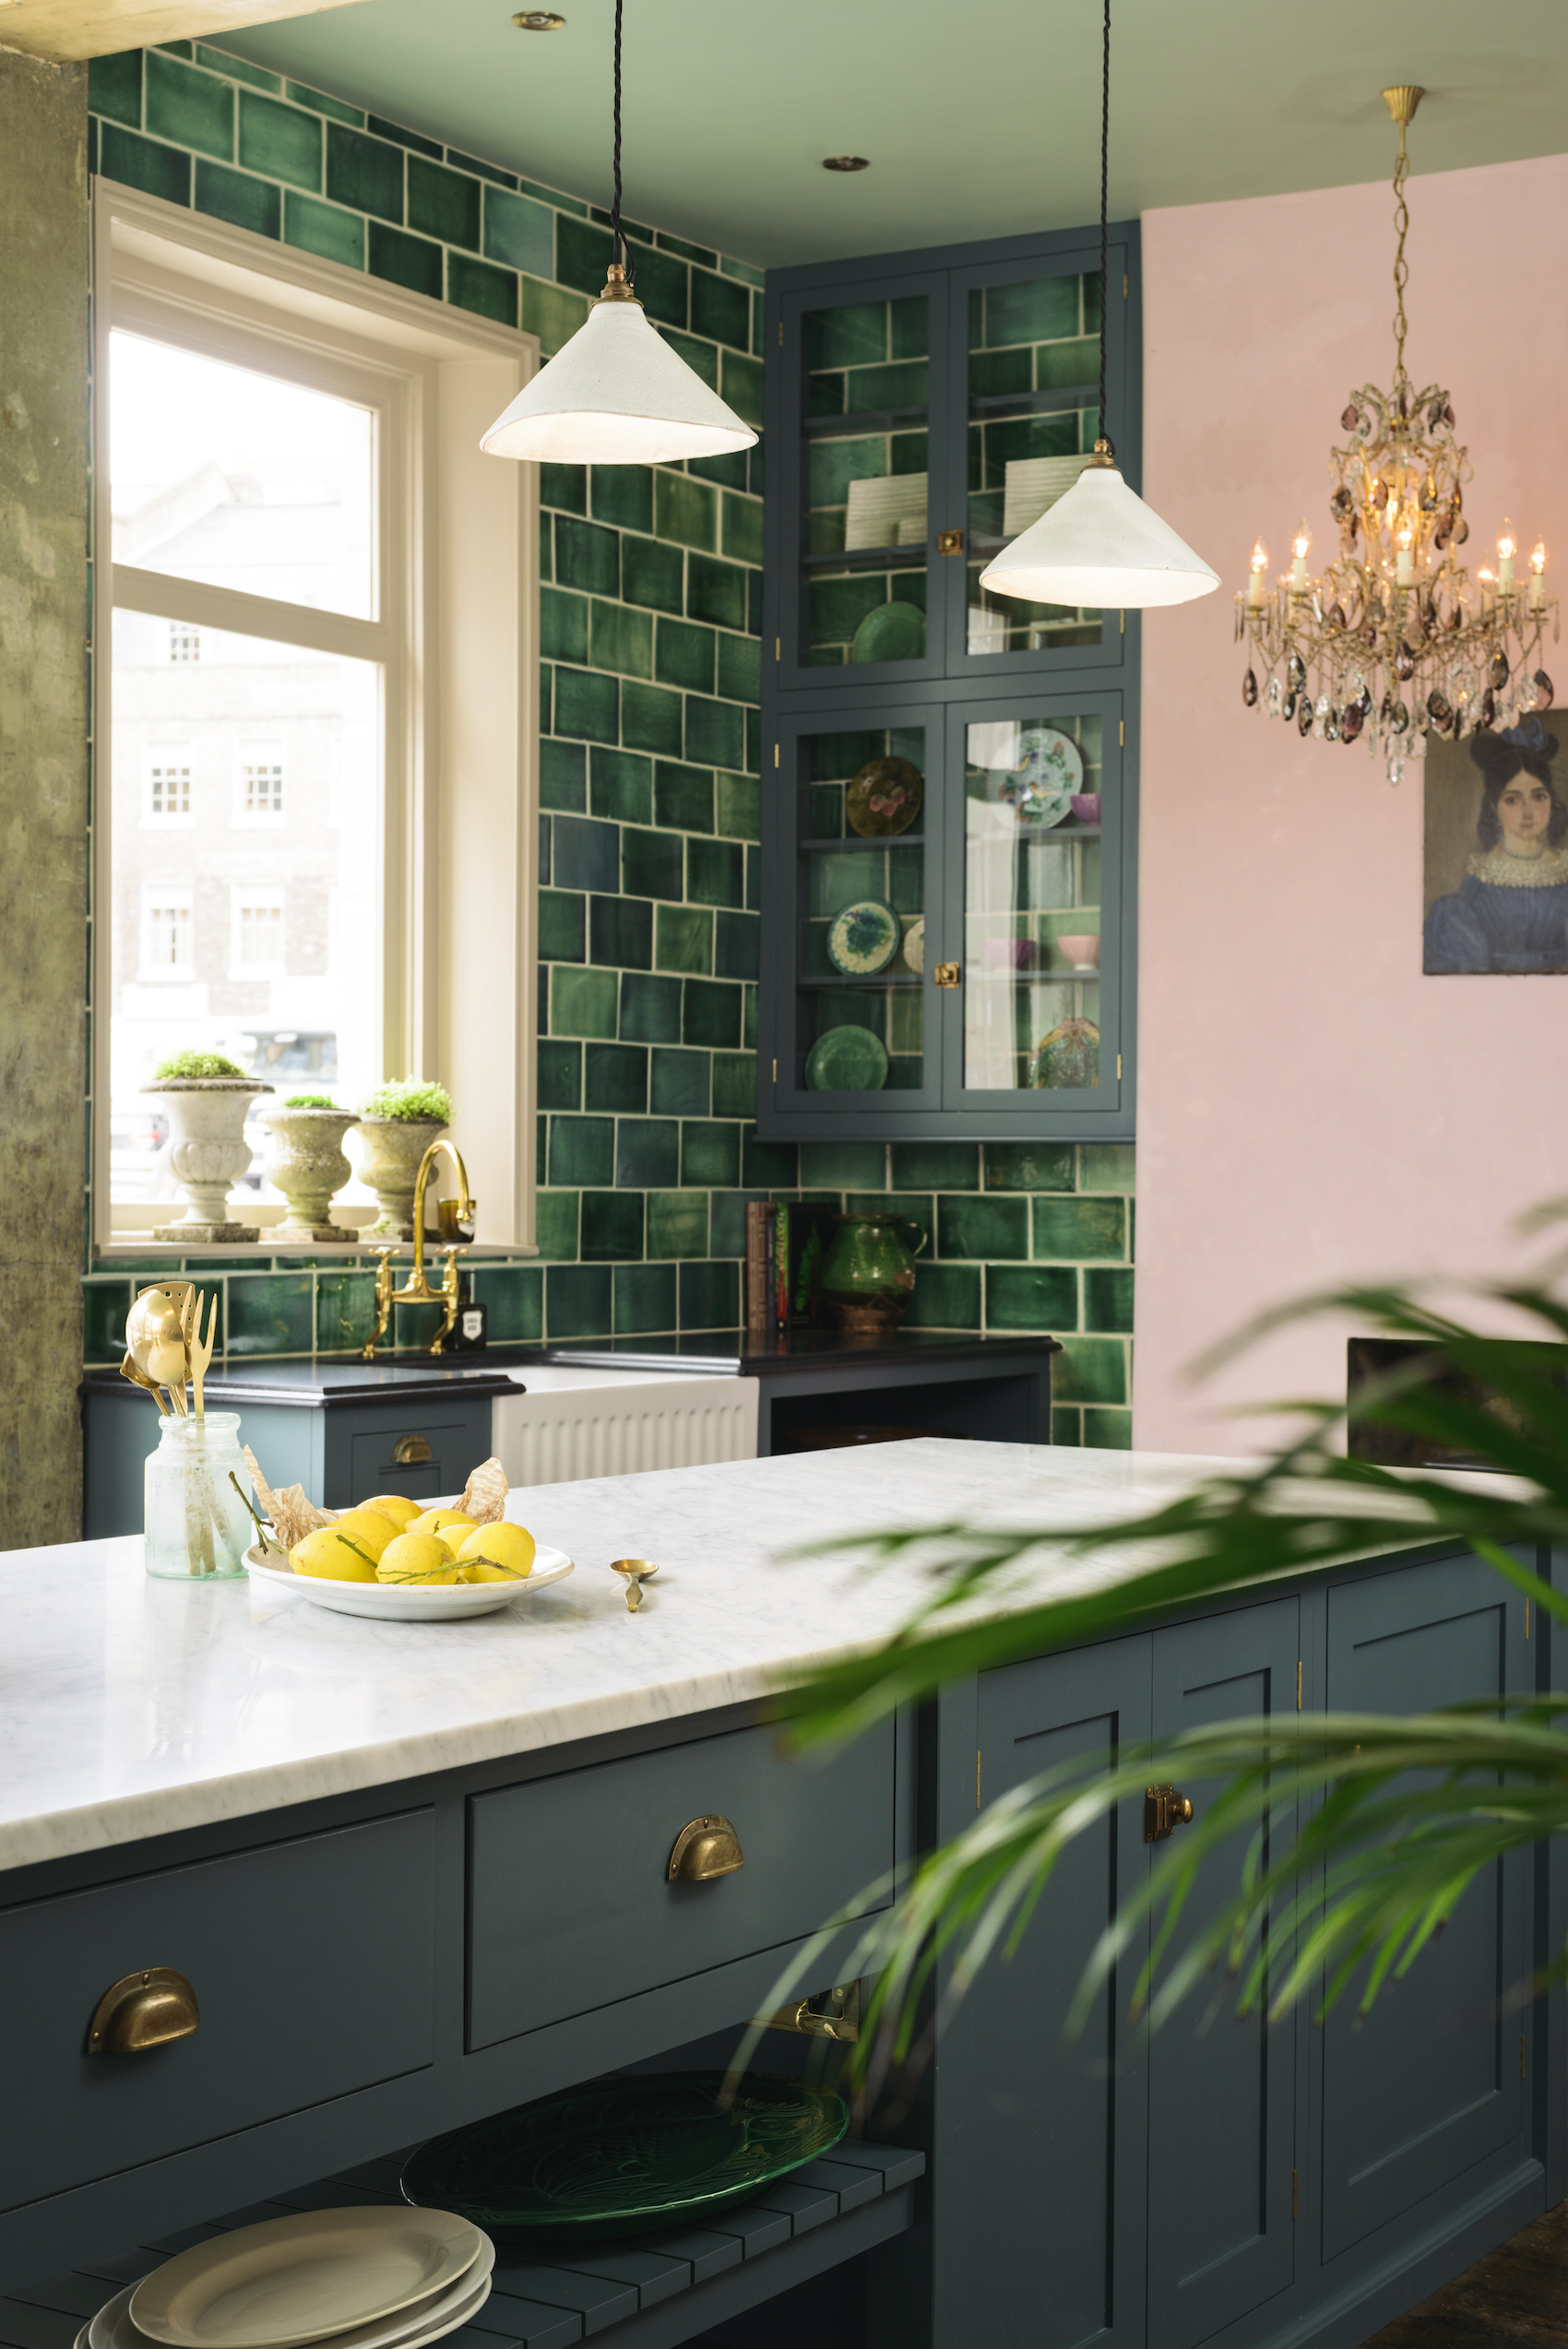 Green Tile Pink Kitchen   Devols Kitchen Showroom Clerkenwell London   20 Photos That Will Prove Decorating with Pink and Green is the Next Big Thing